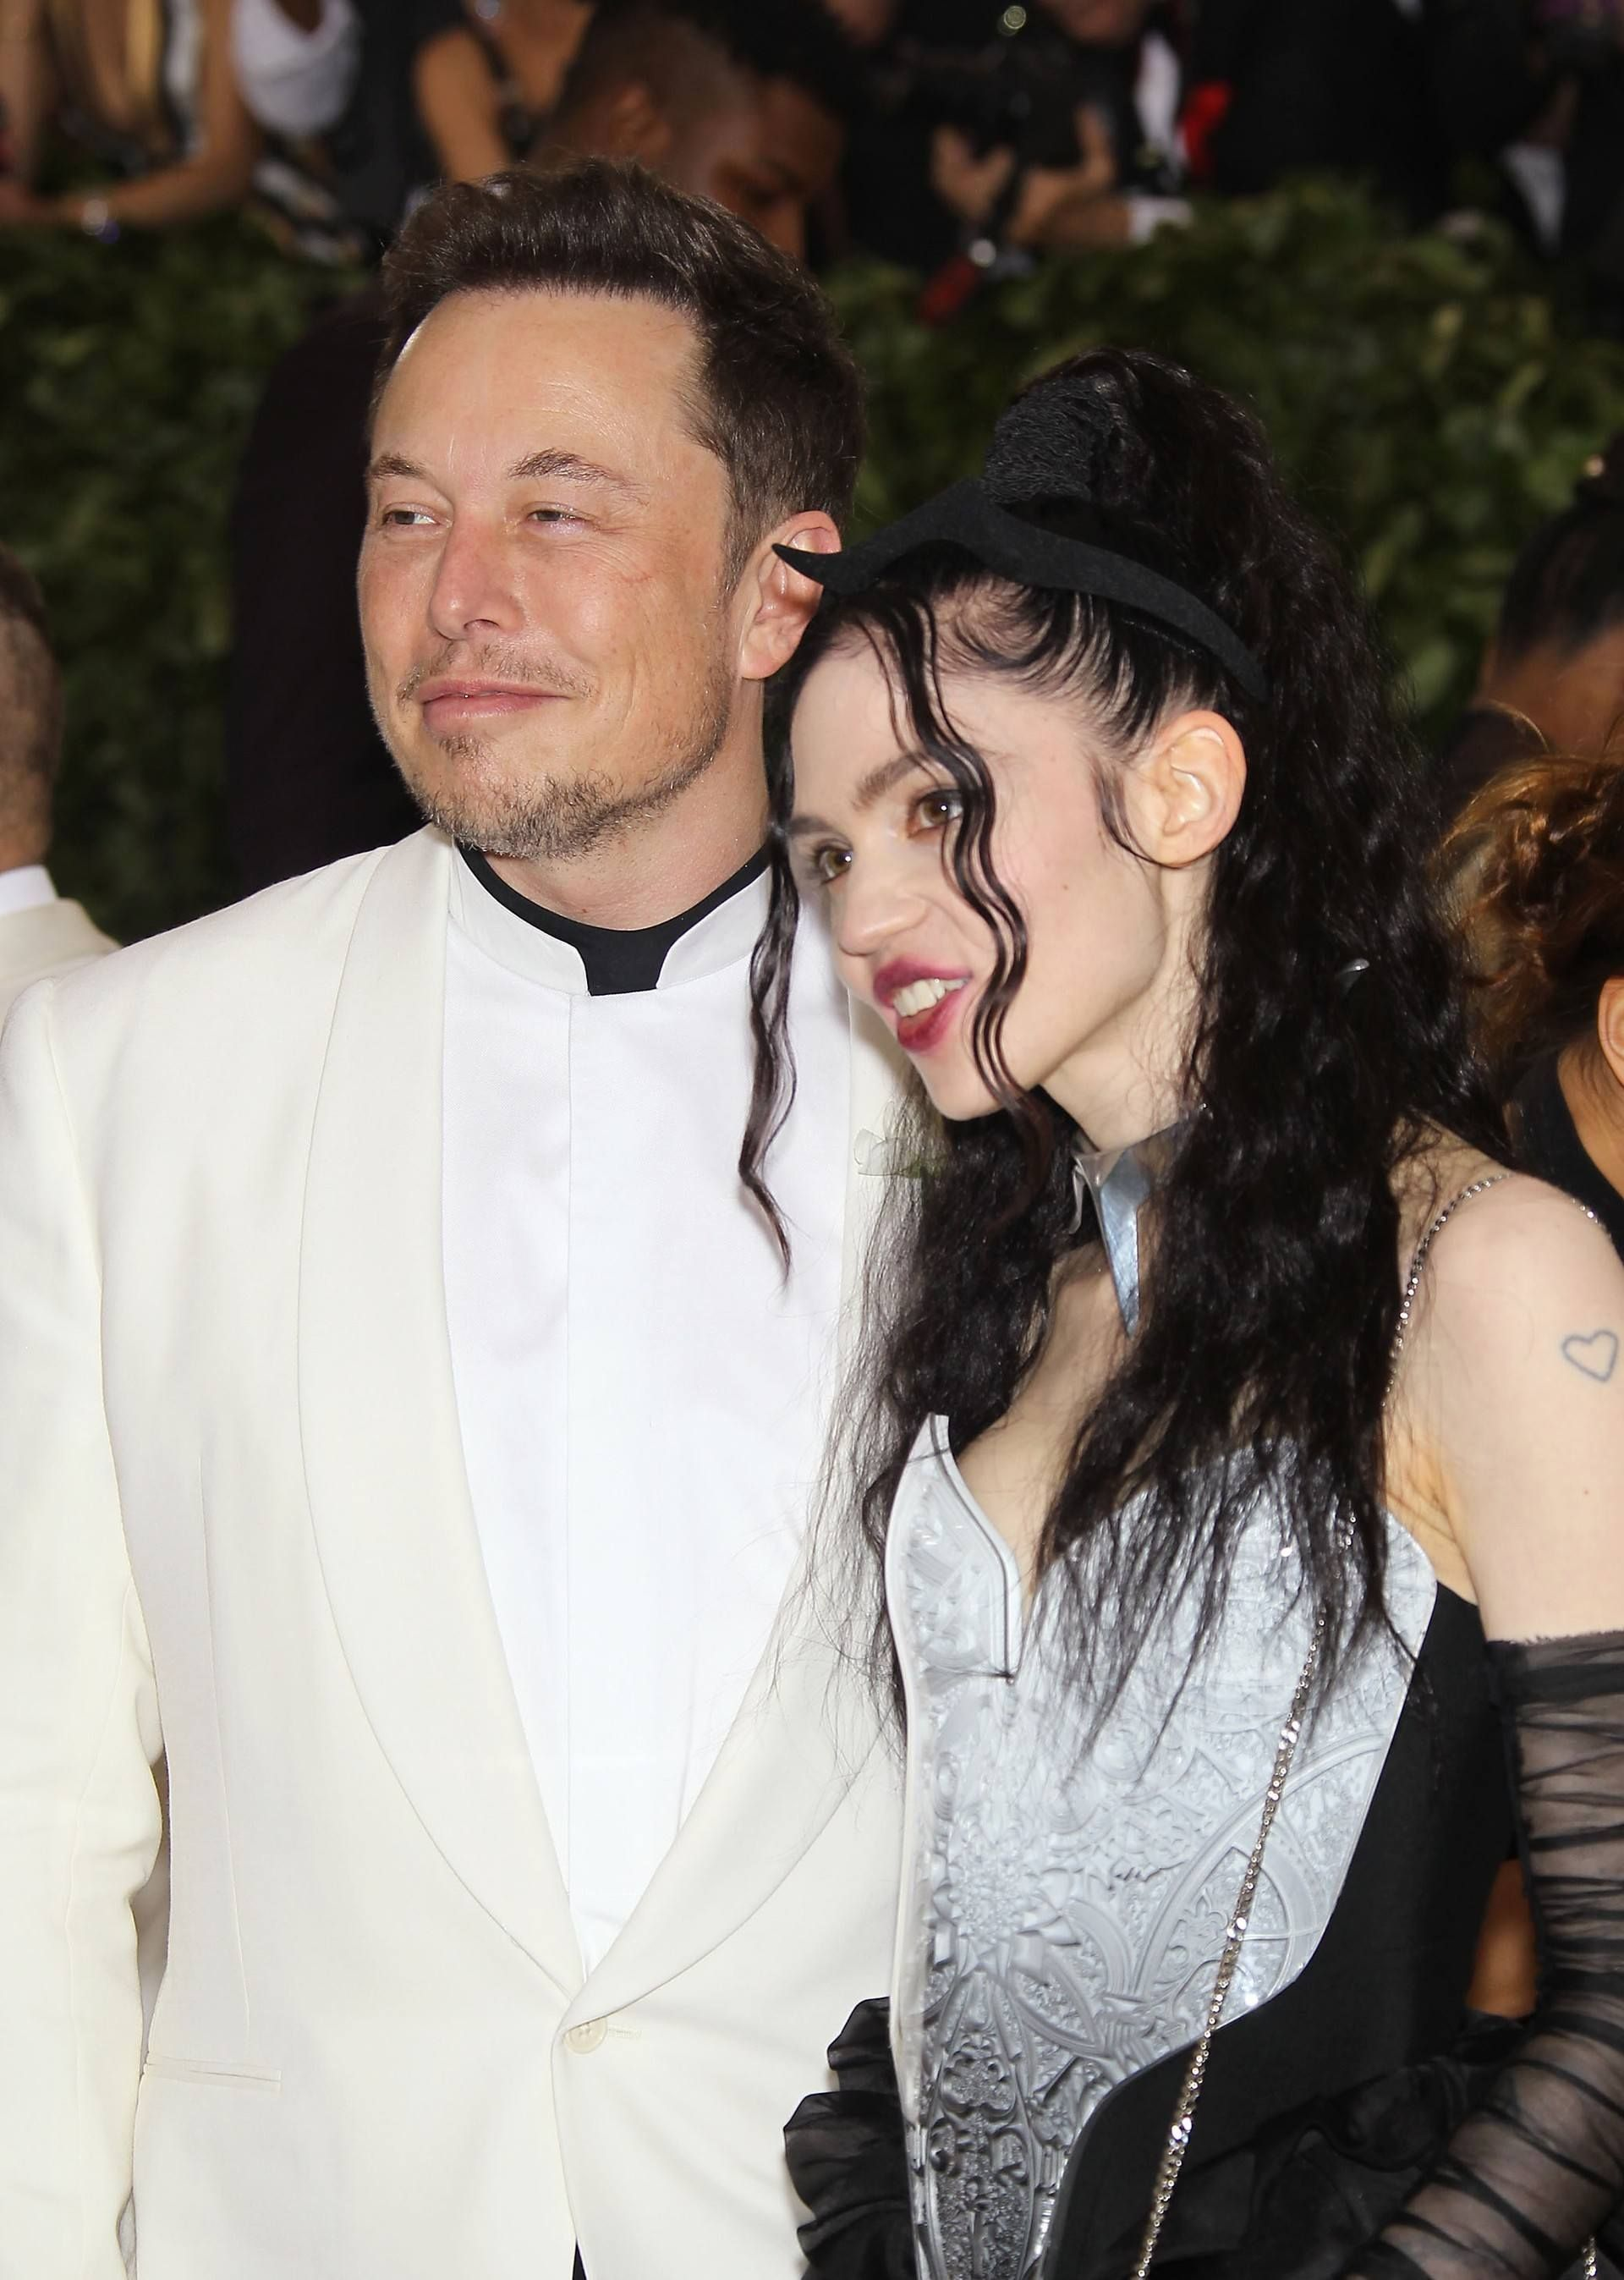 Grimes and Elon Musk at Met Gala 2018 | Claire Grimes | Elon